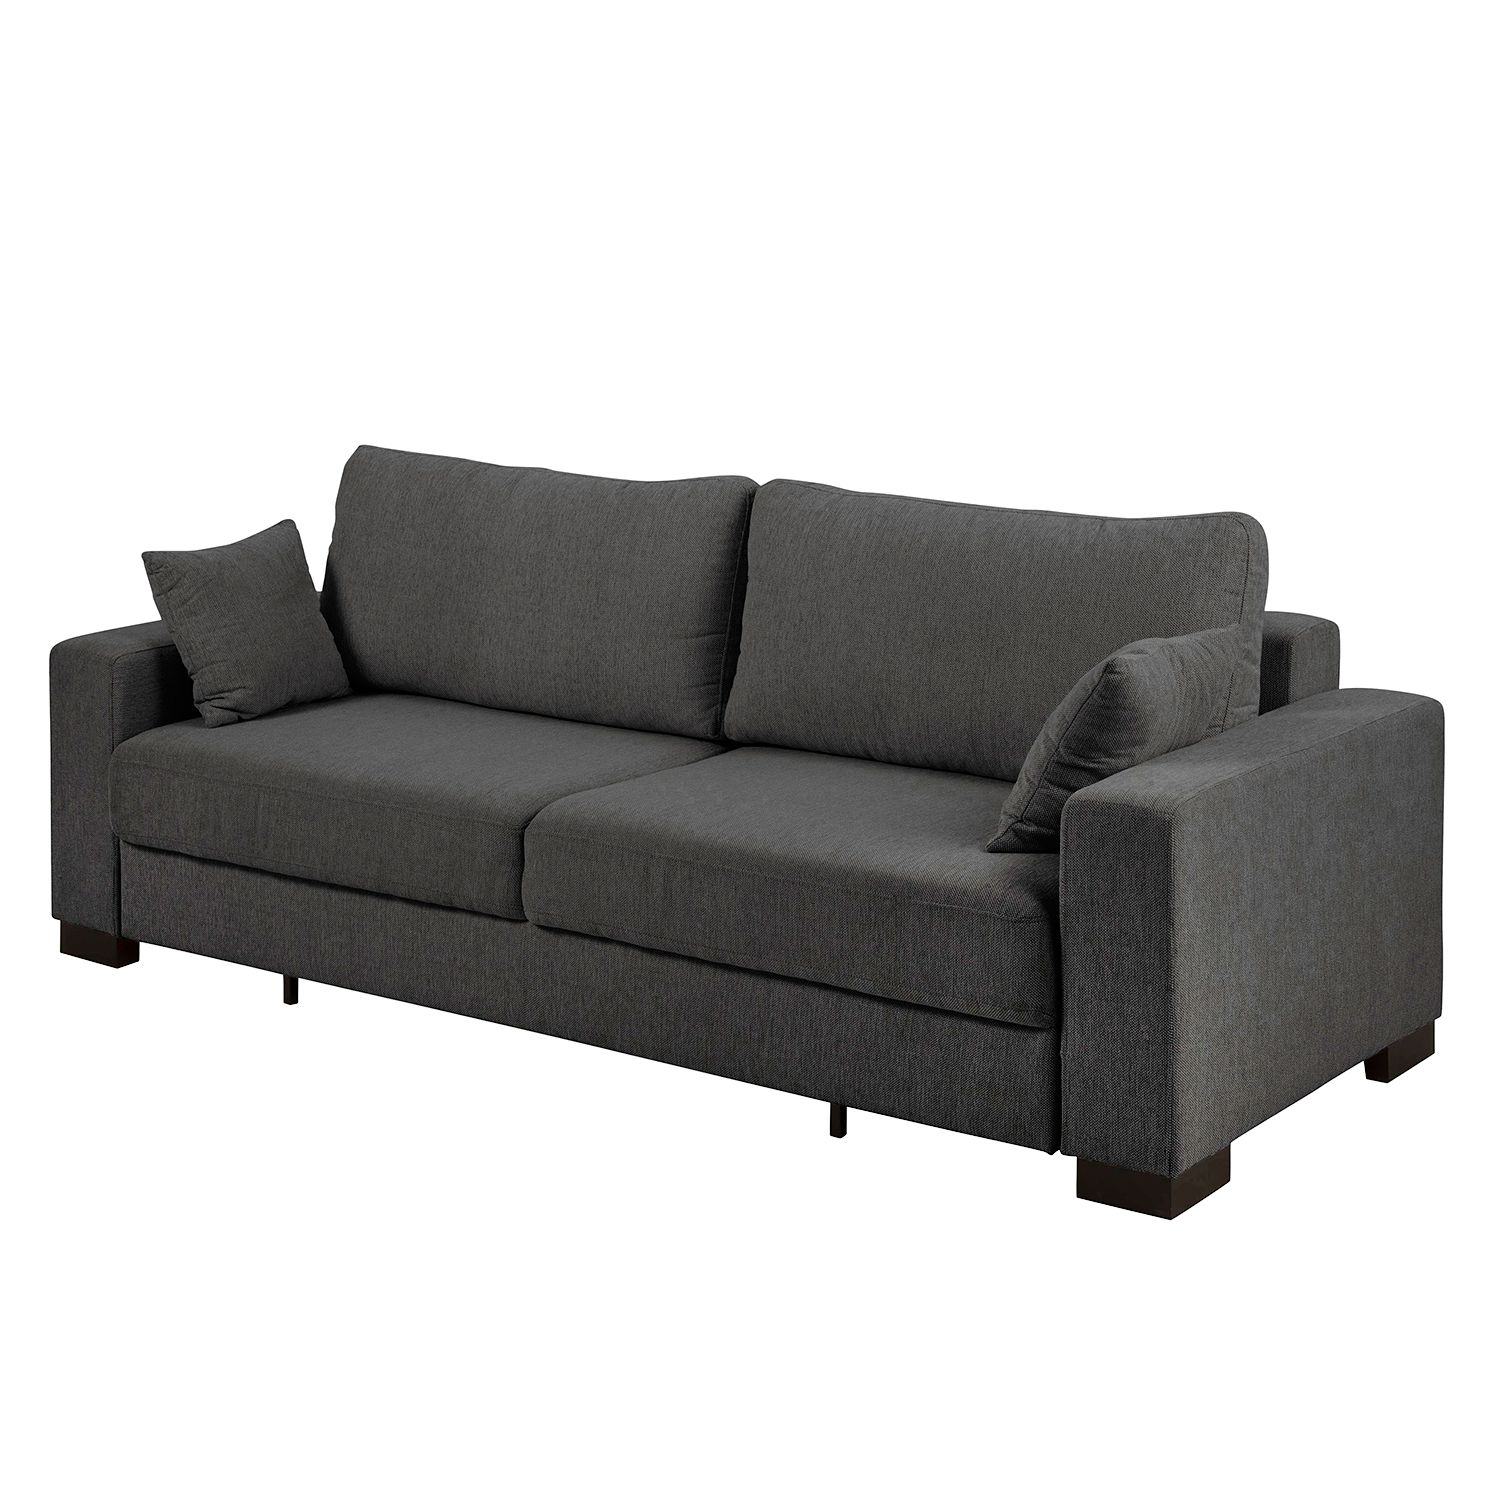 20 sparen schlafsofa manoel von roomscape nur 559 99 cherry m bel home24. Black Bedroom Furniture Sets. Home Design Ideas